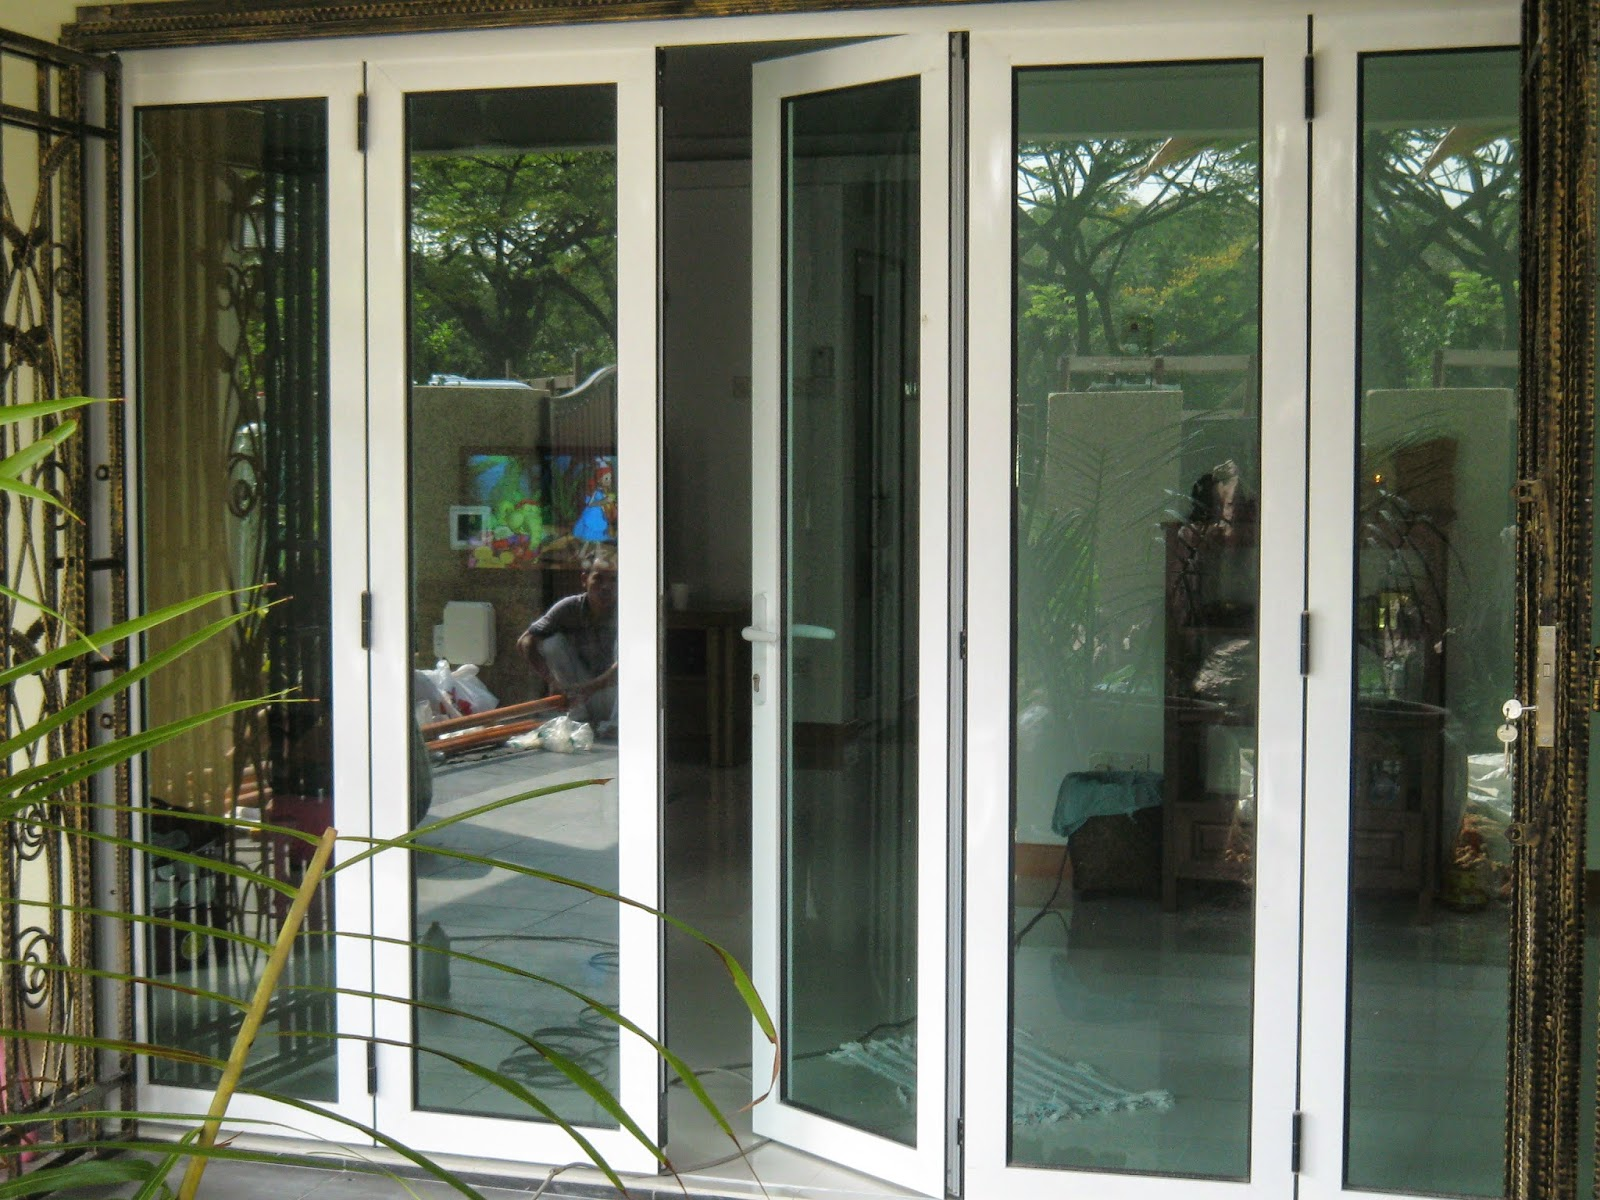 Folding Door Malaysia. Collection Folded Door Malaysia Pictures   Images picture are ideas